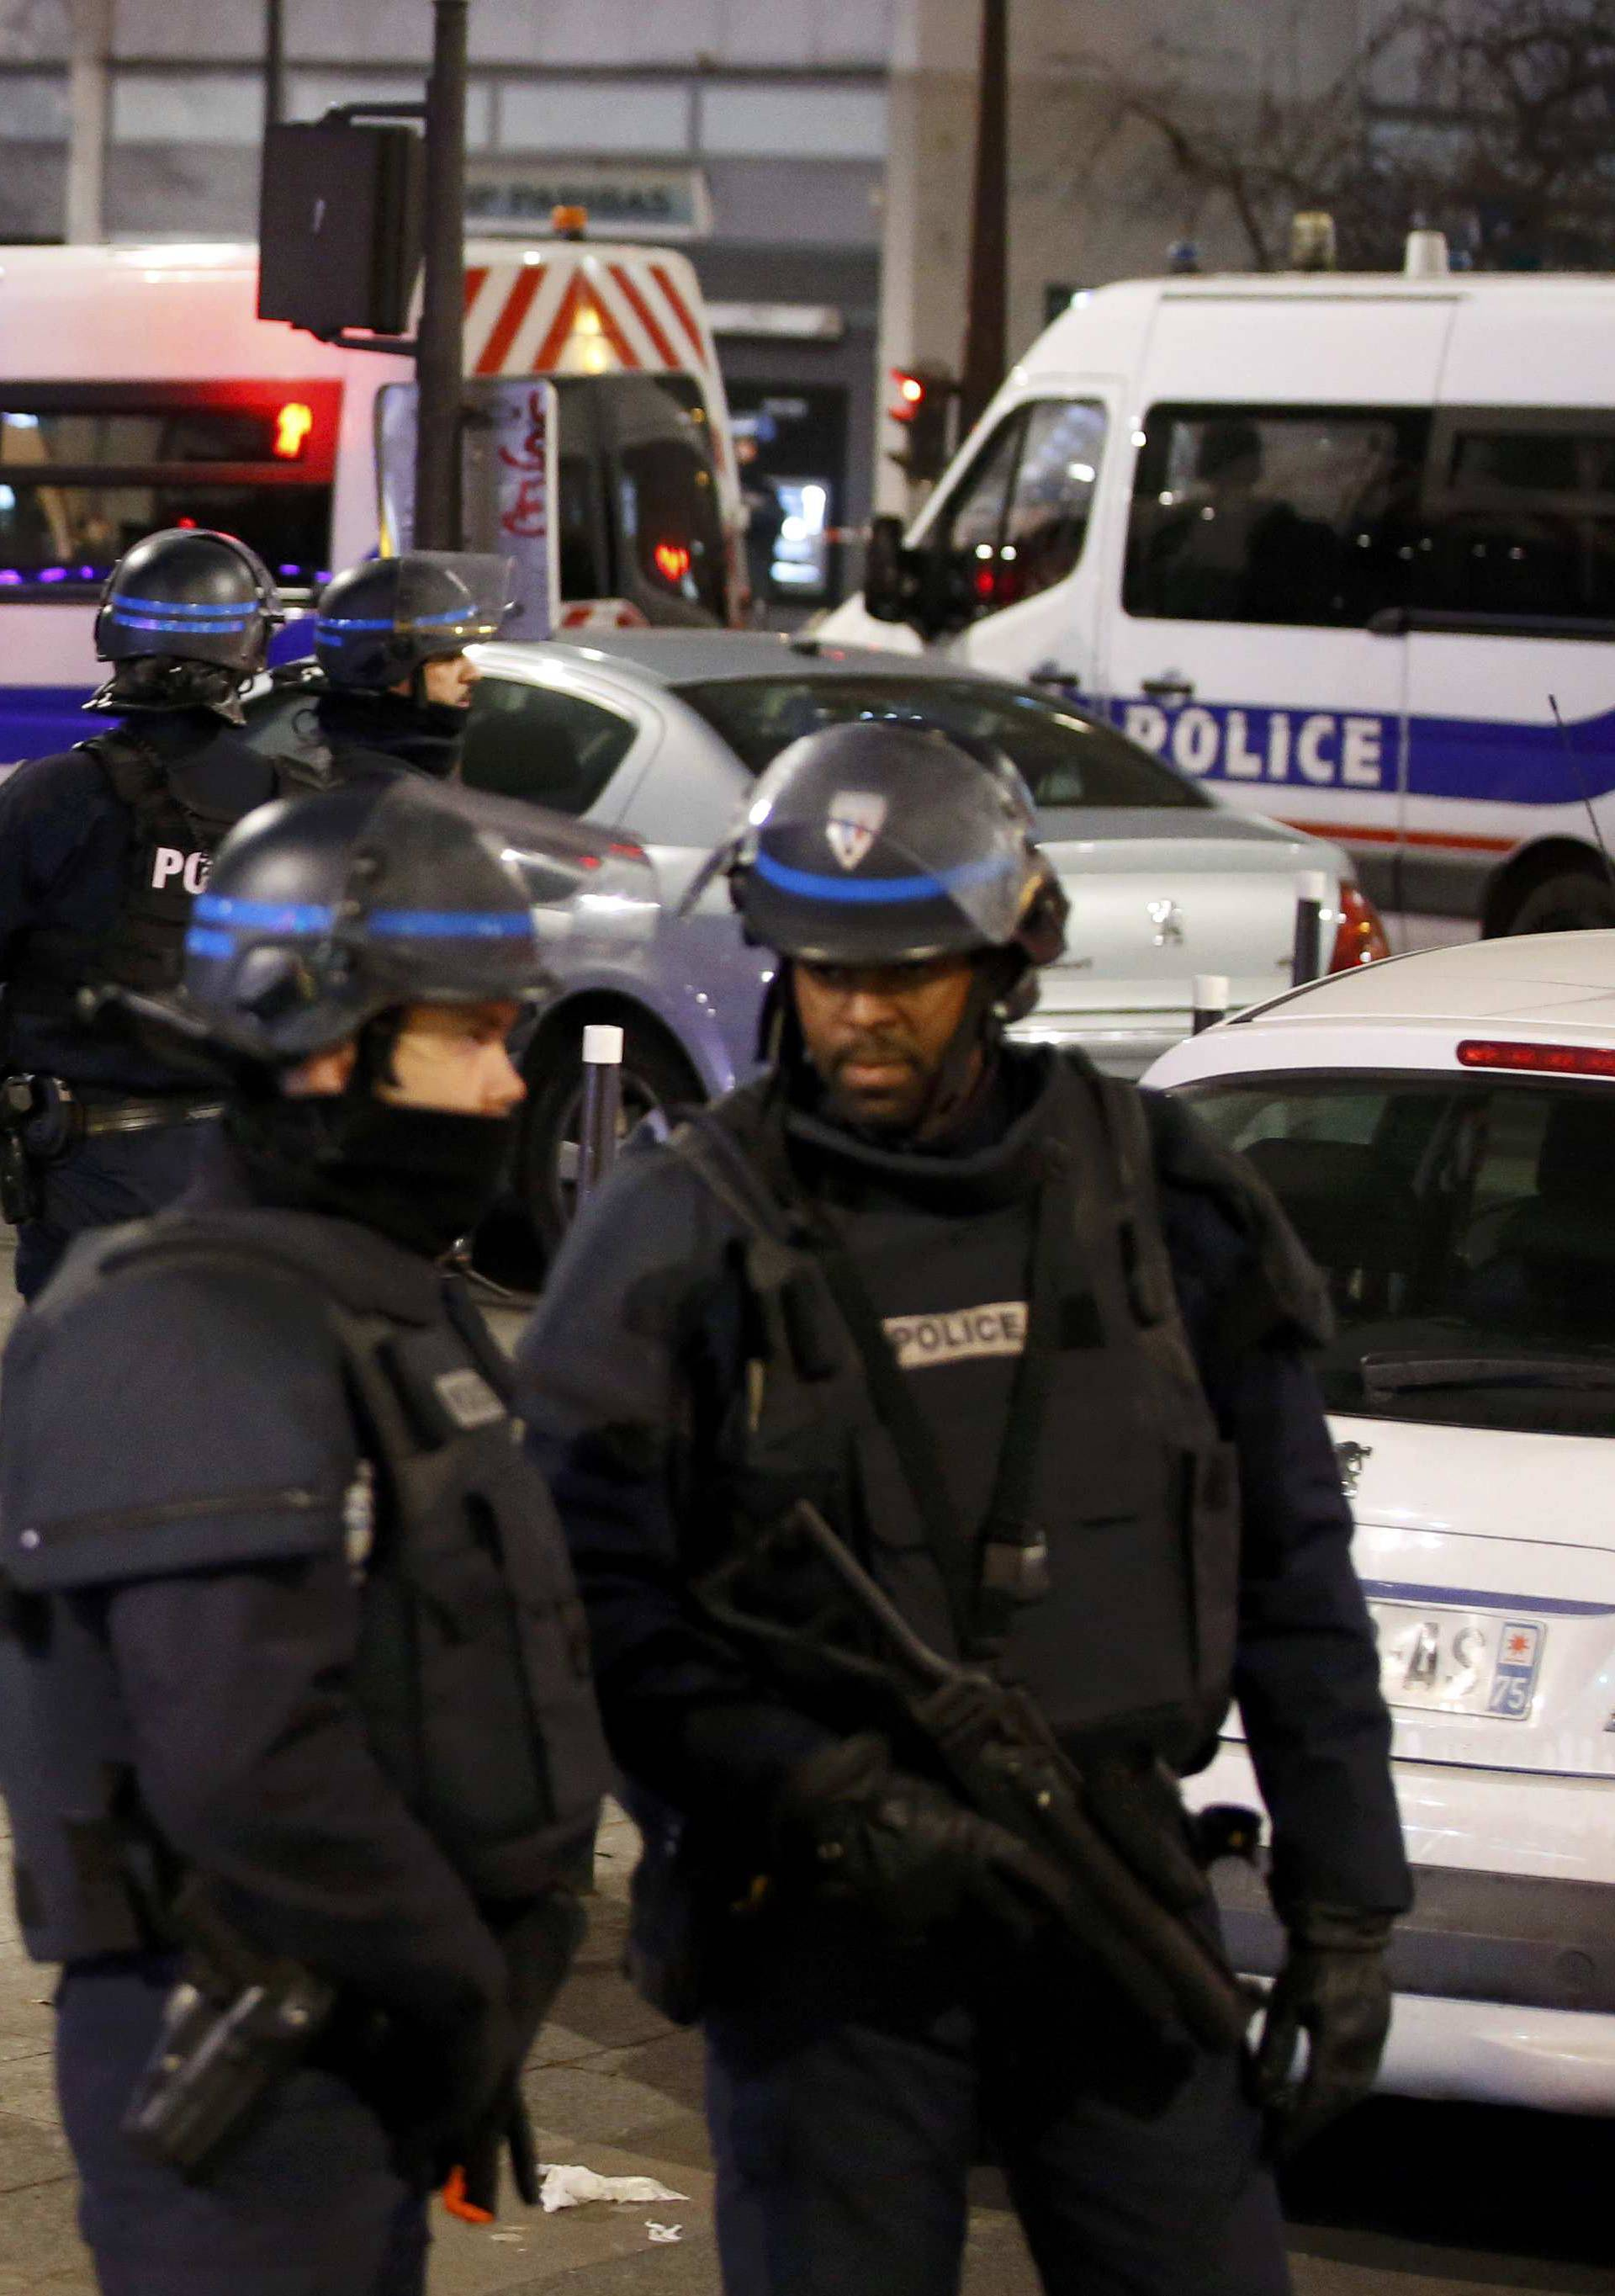 French police secure a street near the travel agency where a gunman has taken hostage about half a dozen people in what appears to be a robbery, a police source said, in Paris